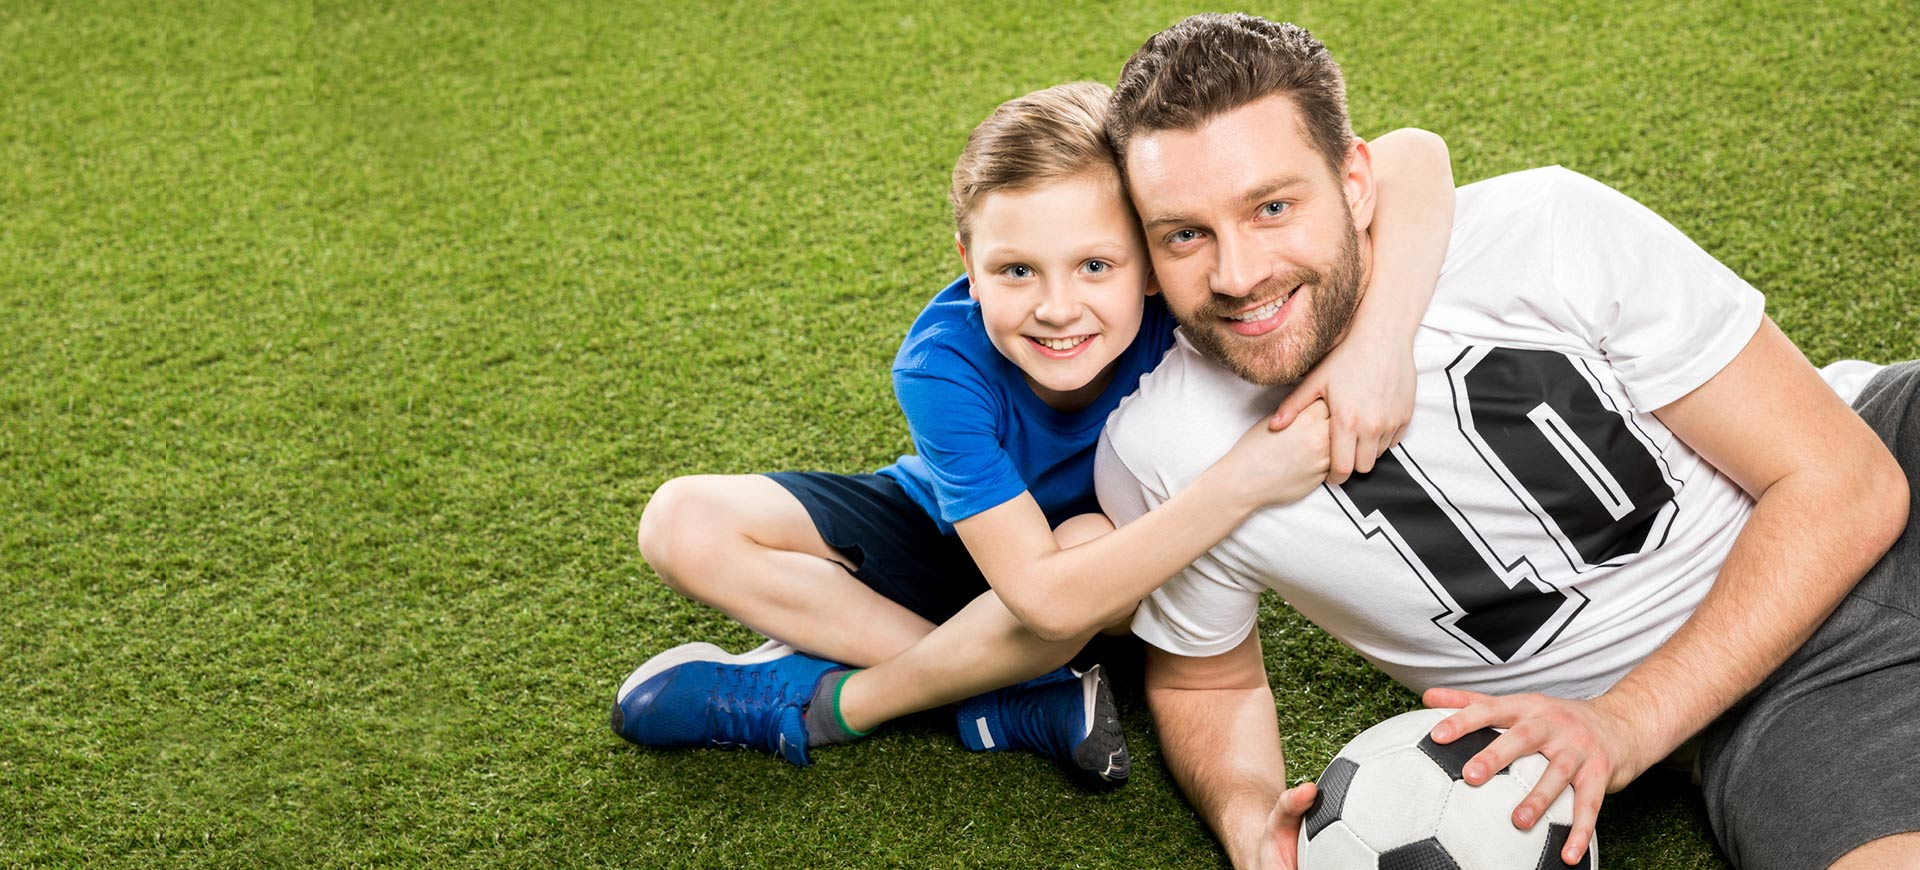 The Importance of Wearing a Mouthguard when Playing Sports